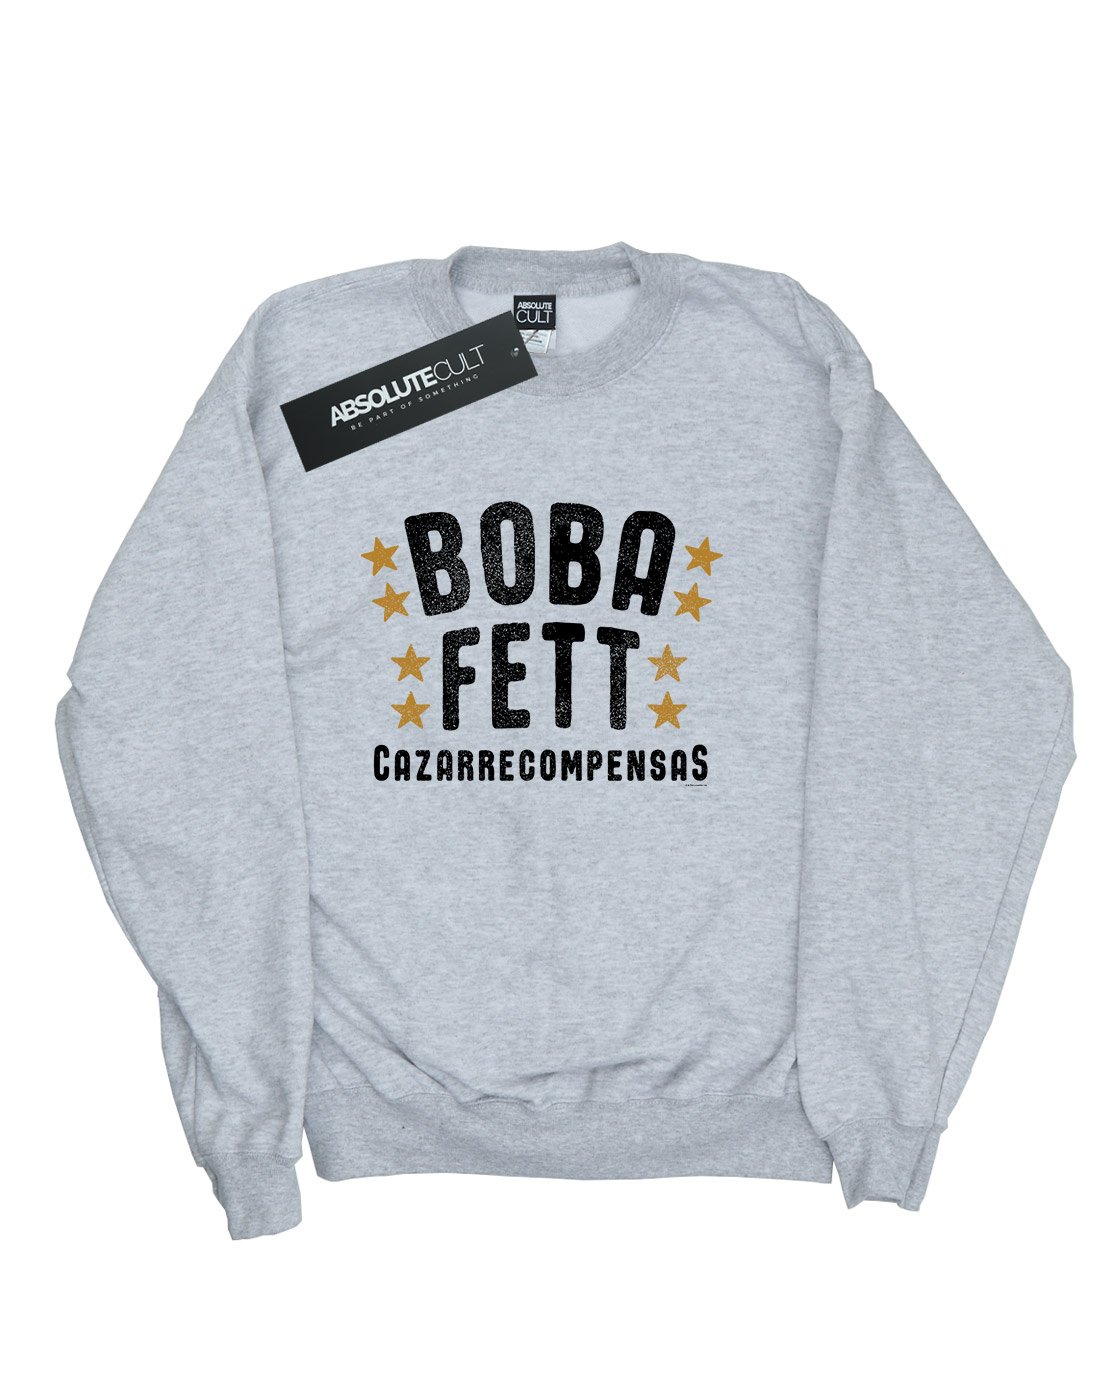 Star Wars Girls Boba Fett Fired Up Sweatshirt